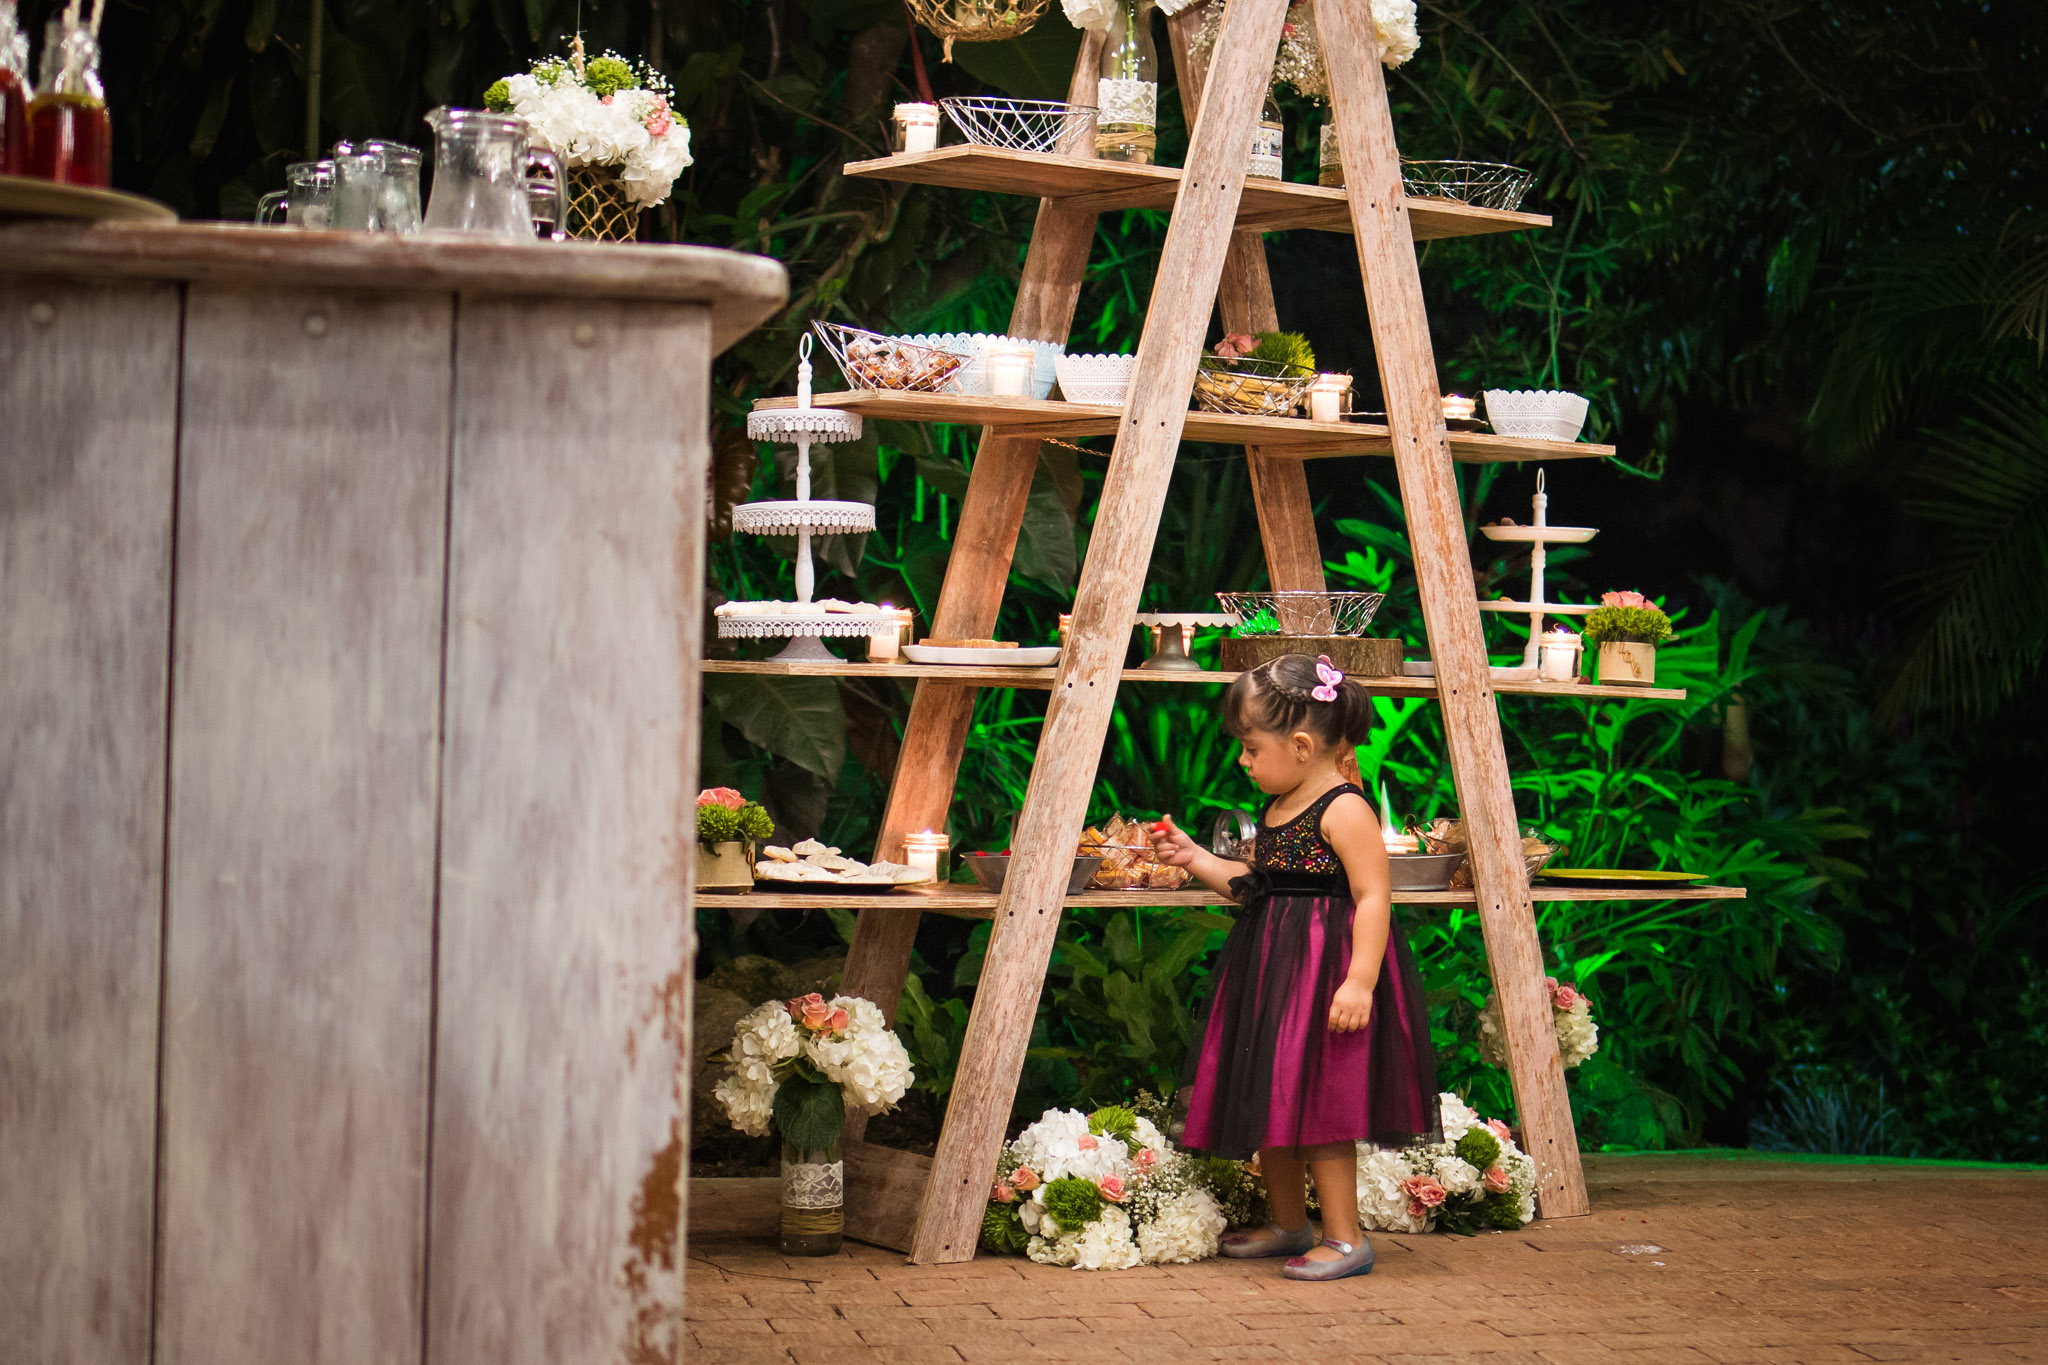 wedding-travellers-destination-wedding-photography-colombia-medellin-chuscalito-candy-bar-kid-cute-girl